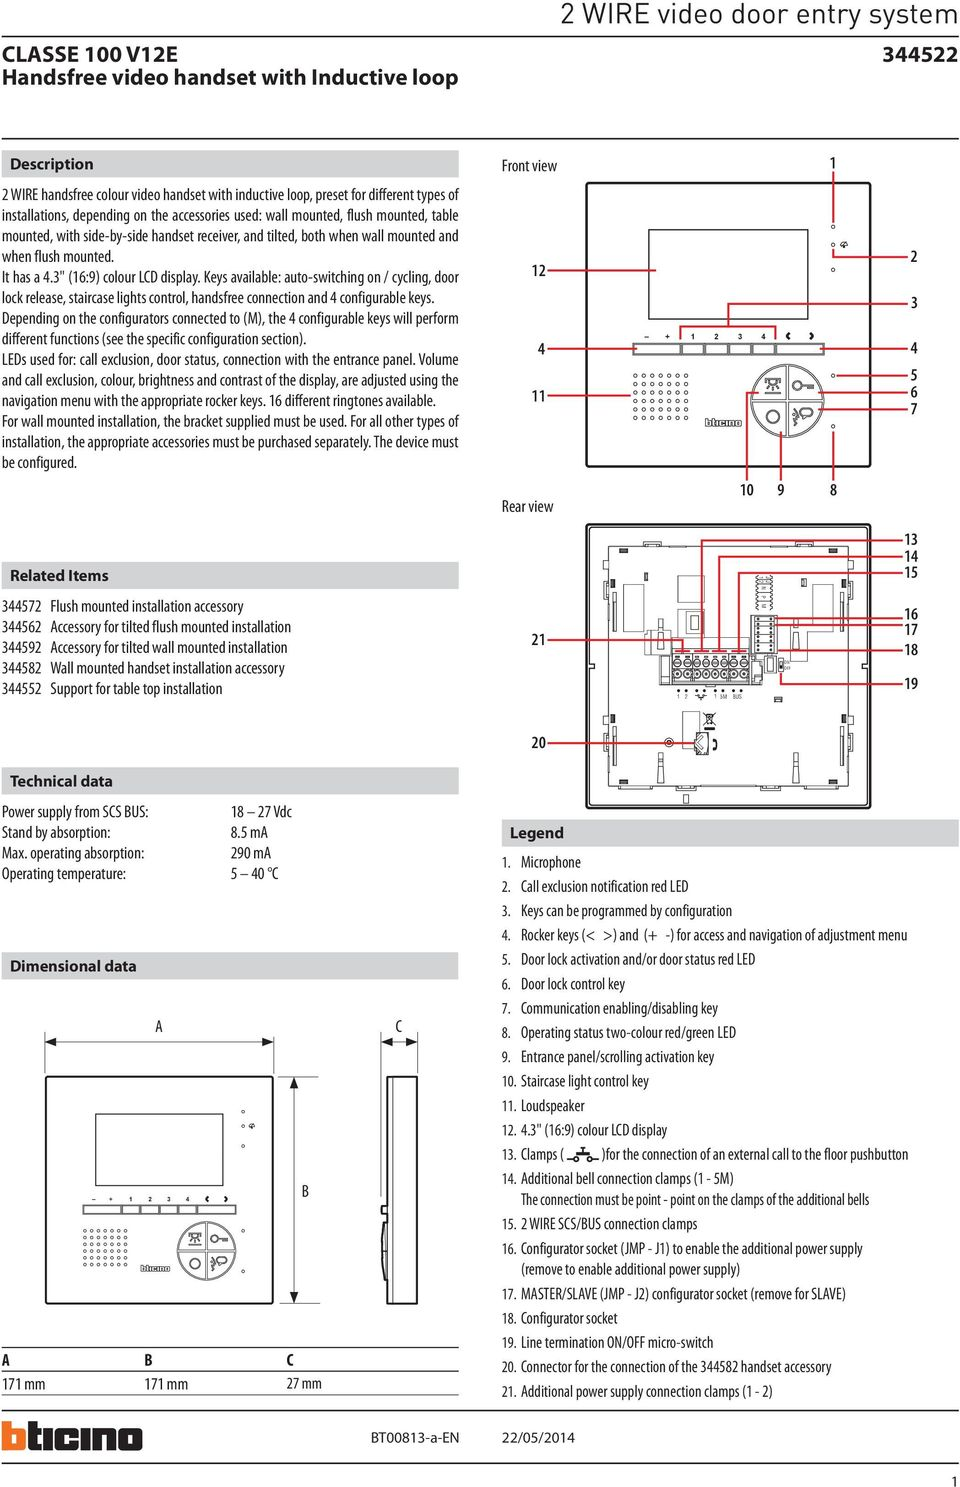 2 Wire Video Door Entry System Pdf